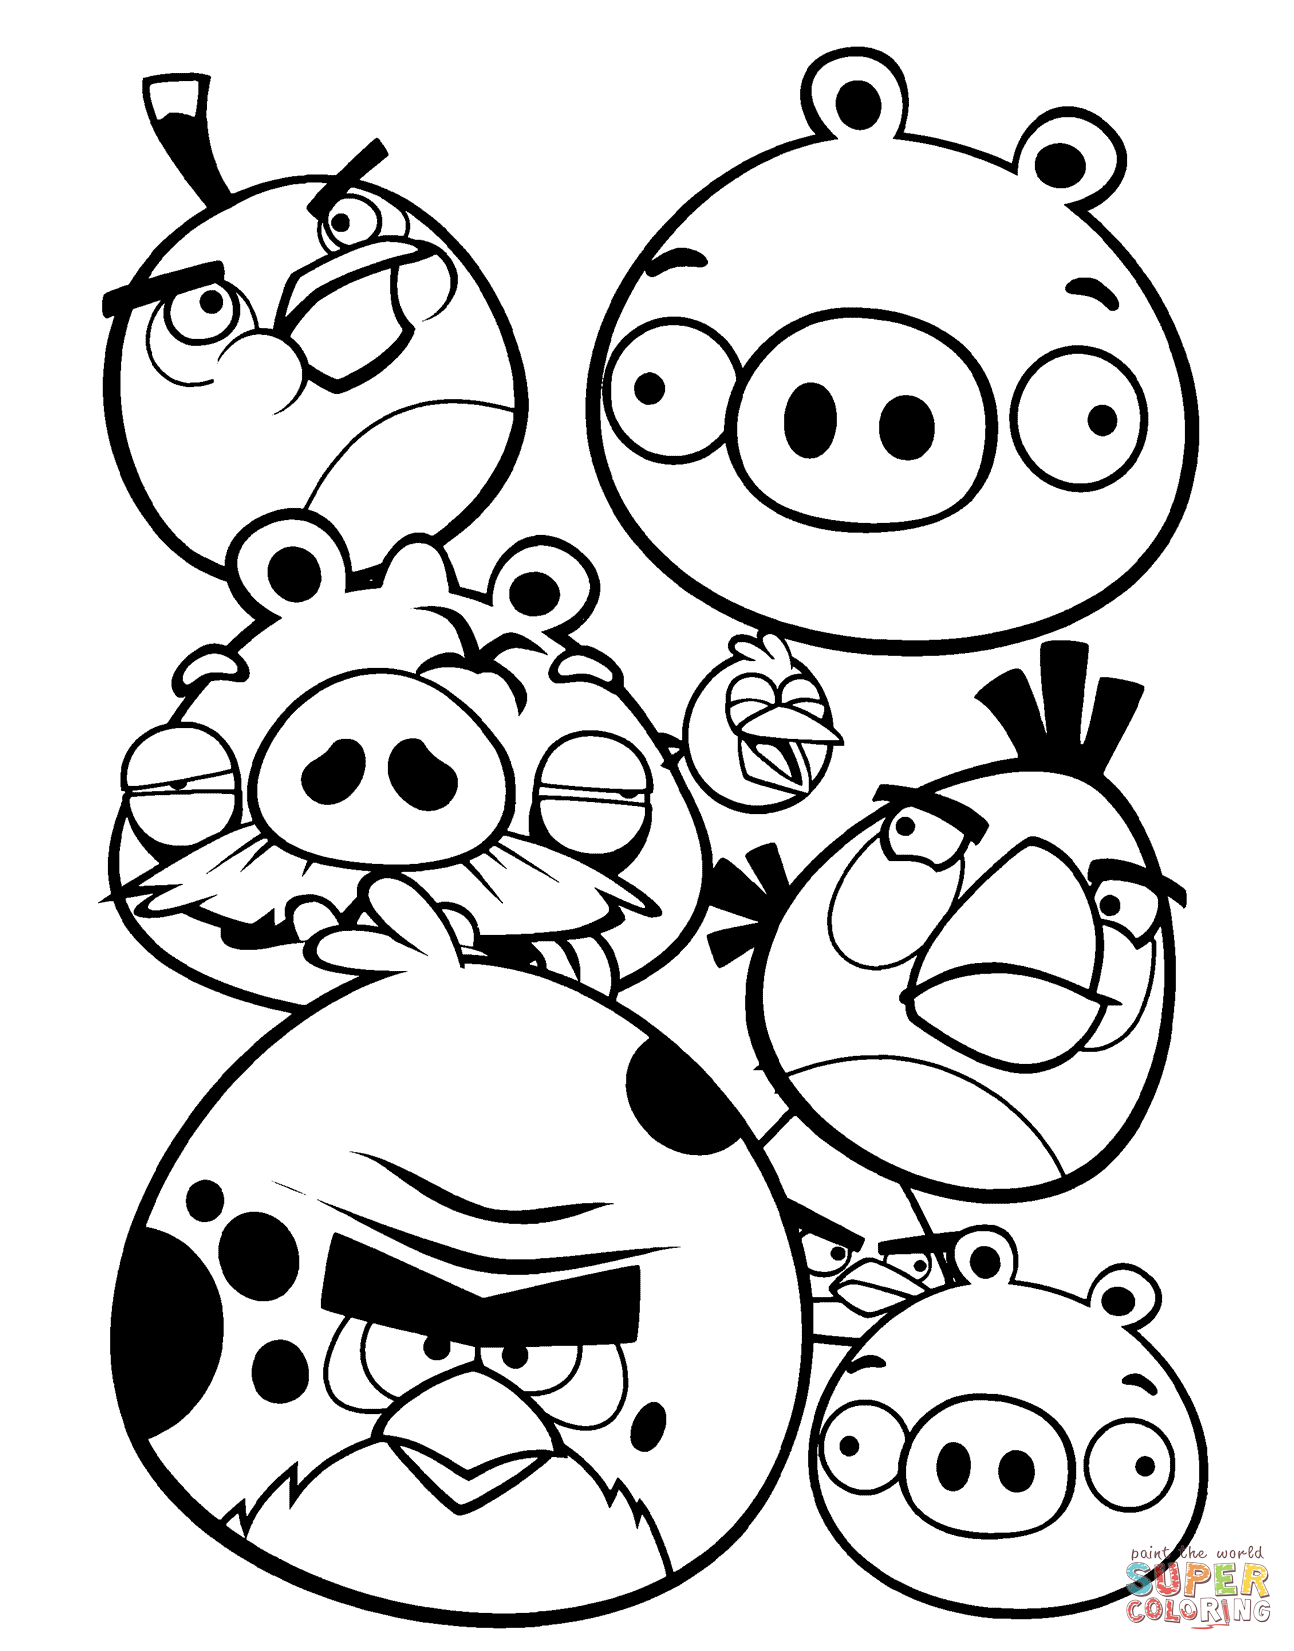 angry birds printable coloring pages angry birds kids coloring pages free printable kids coloring angry birds pages printable